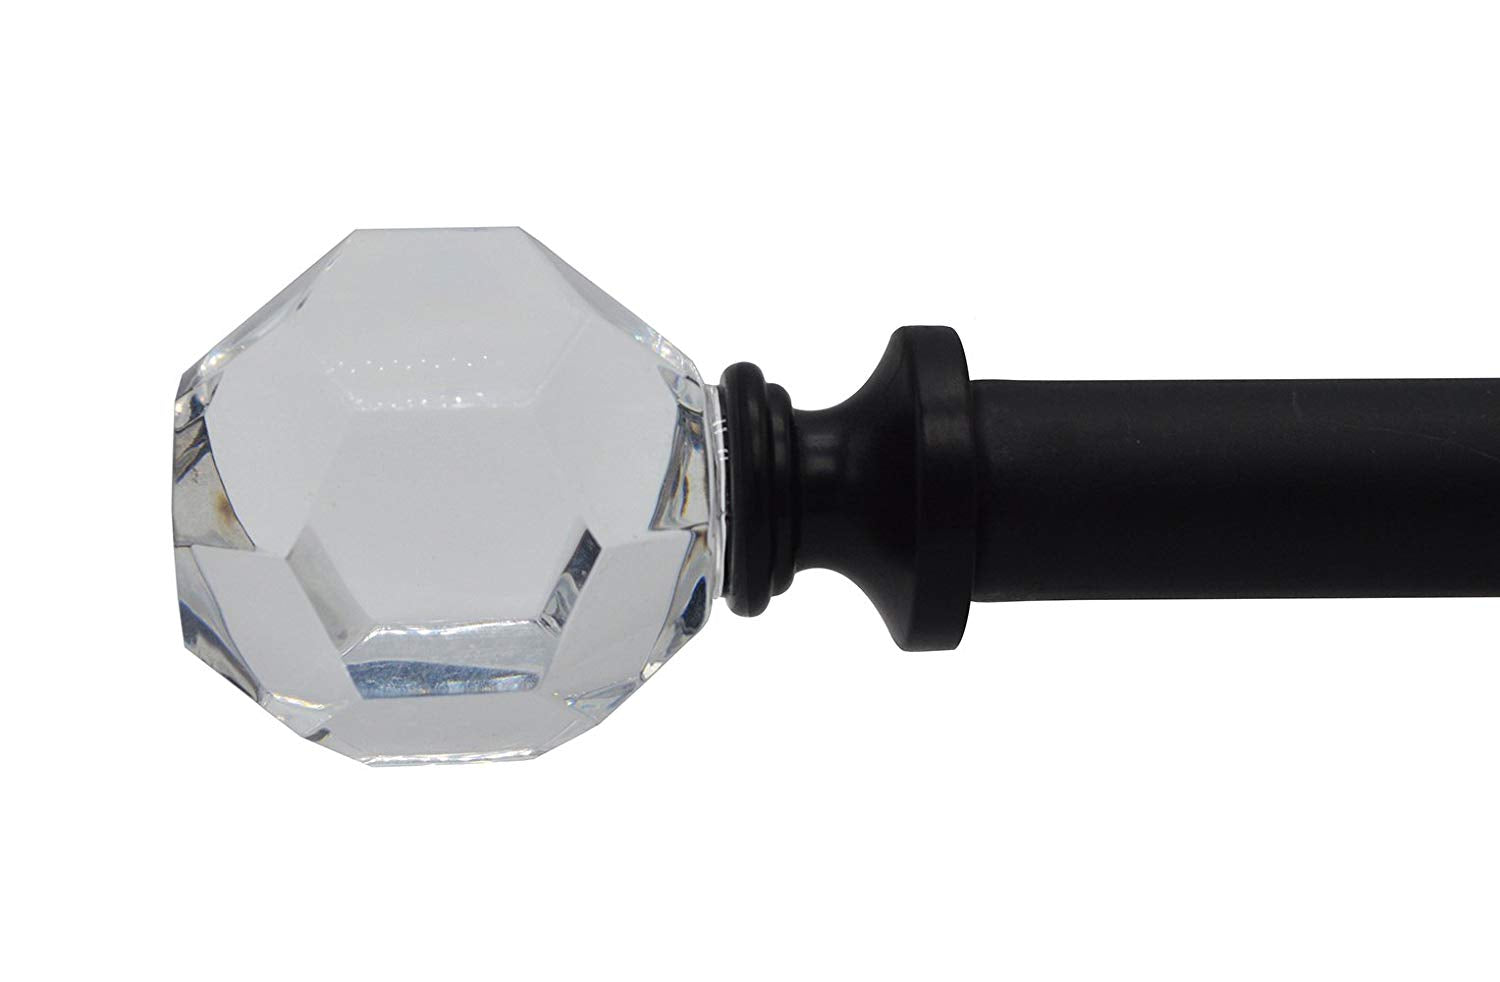 Decorative Cut Crystal Curtain Rod, 5/8-inch diameter, Black